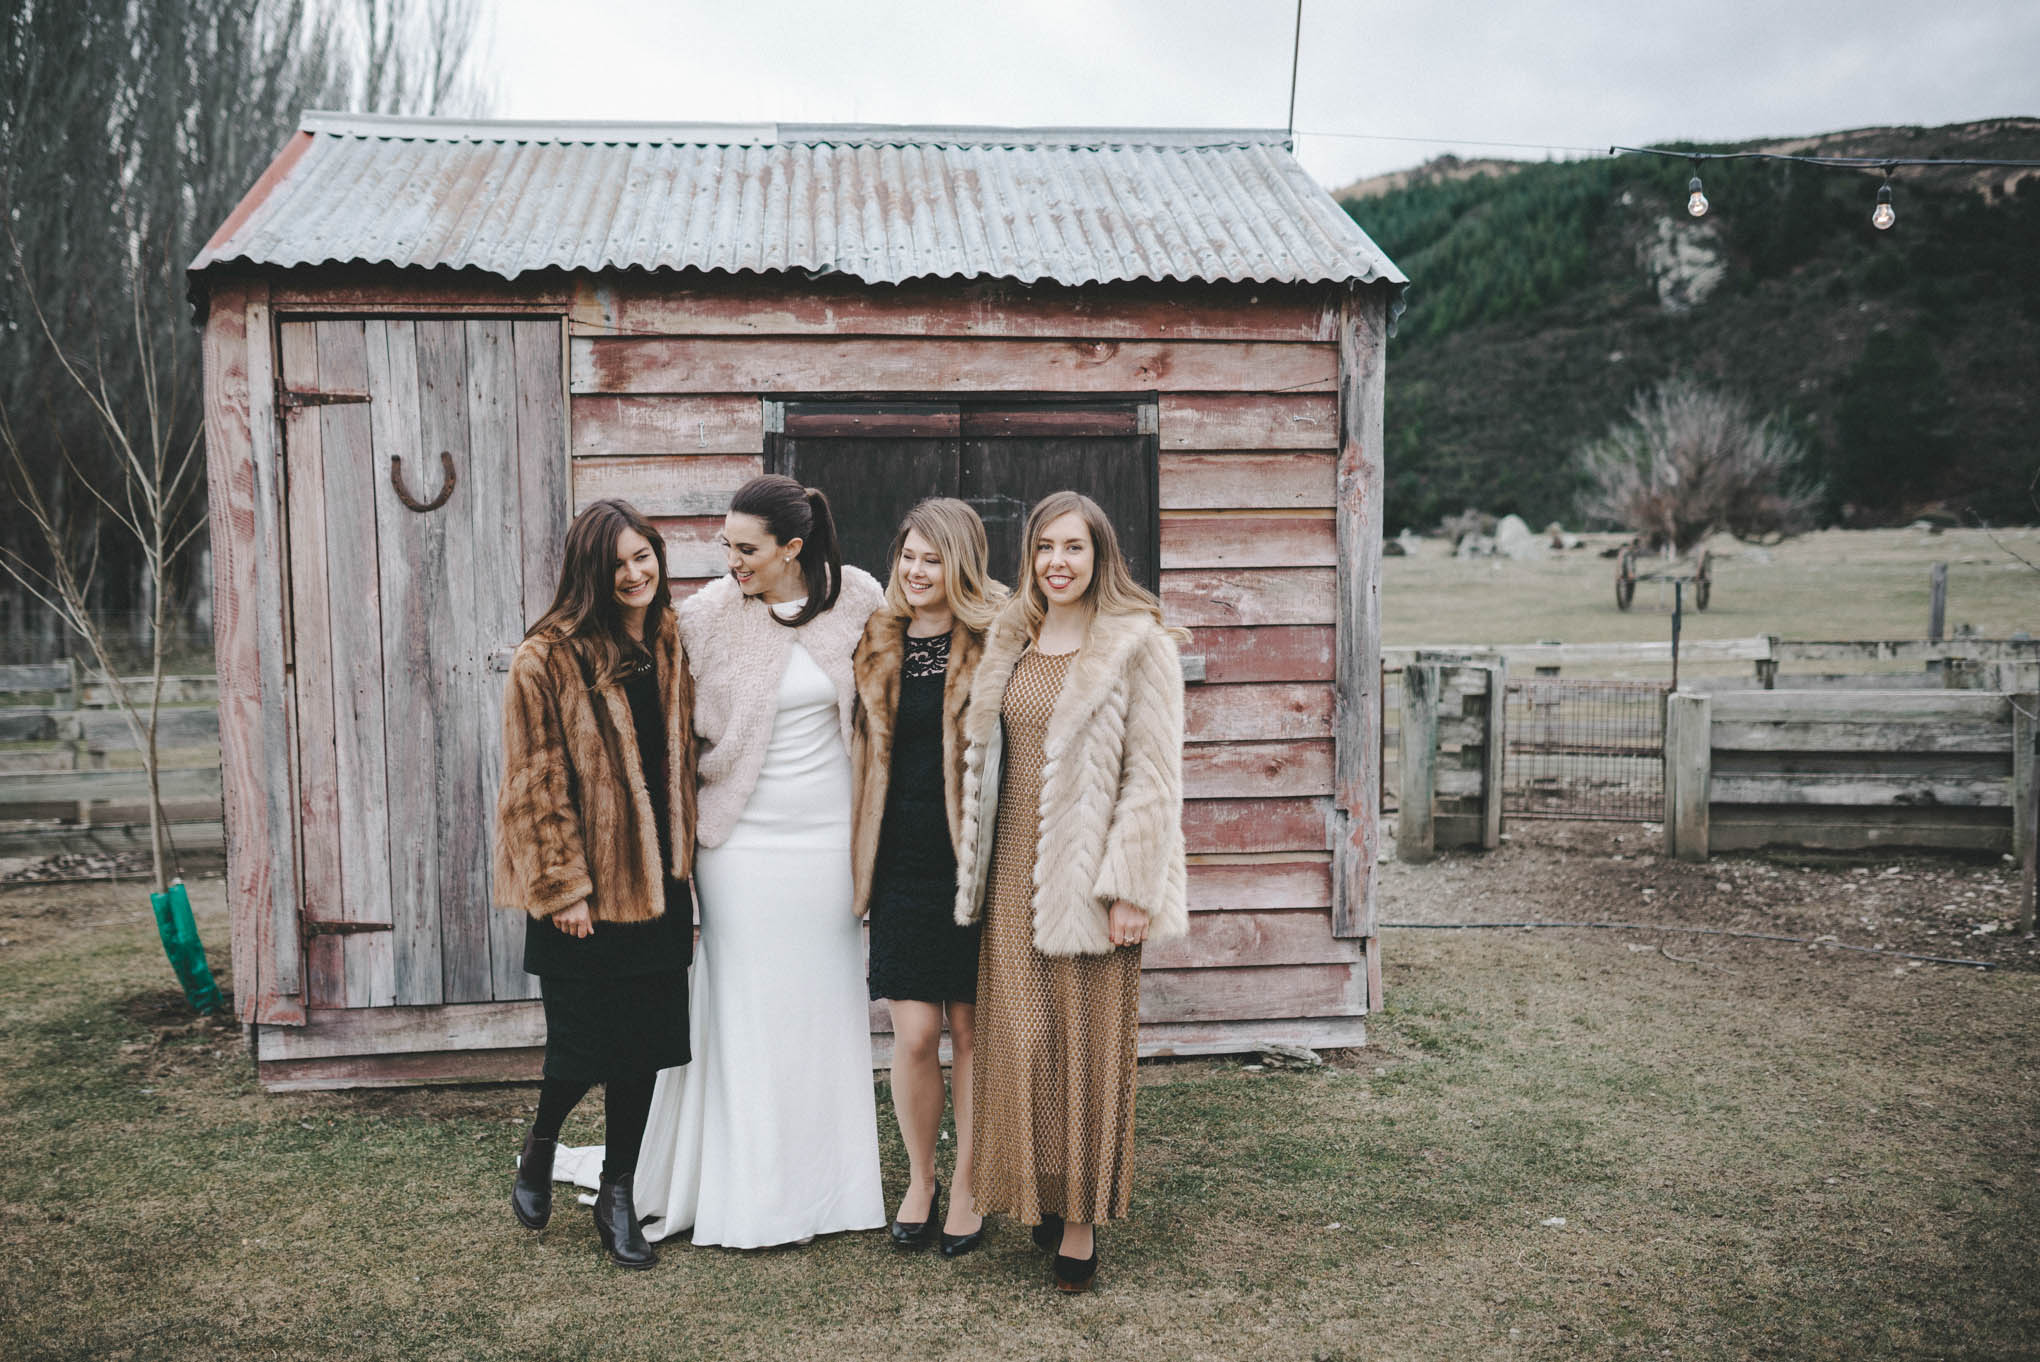 Categories: Weddings-Real Wedding: Claudia + Tom - Photography by Mickey Ross